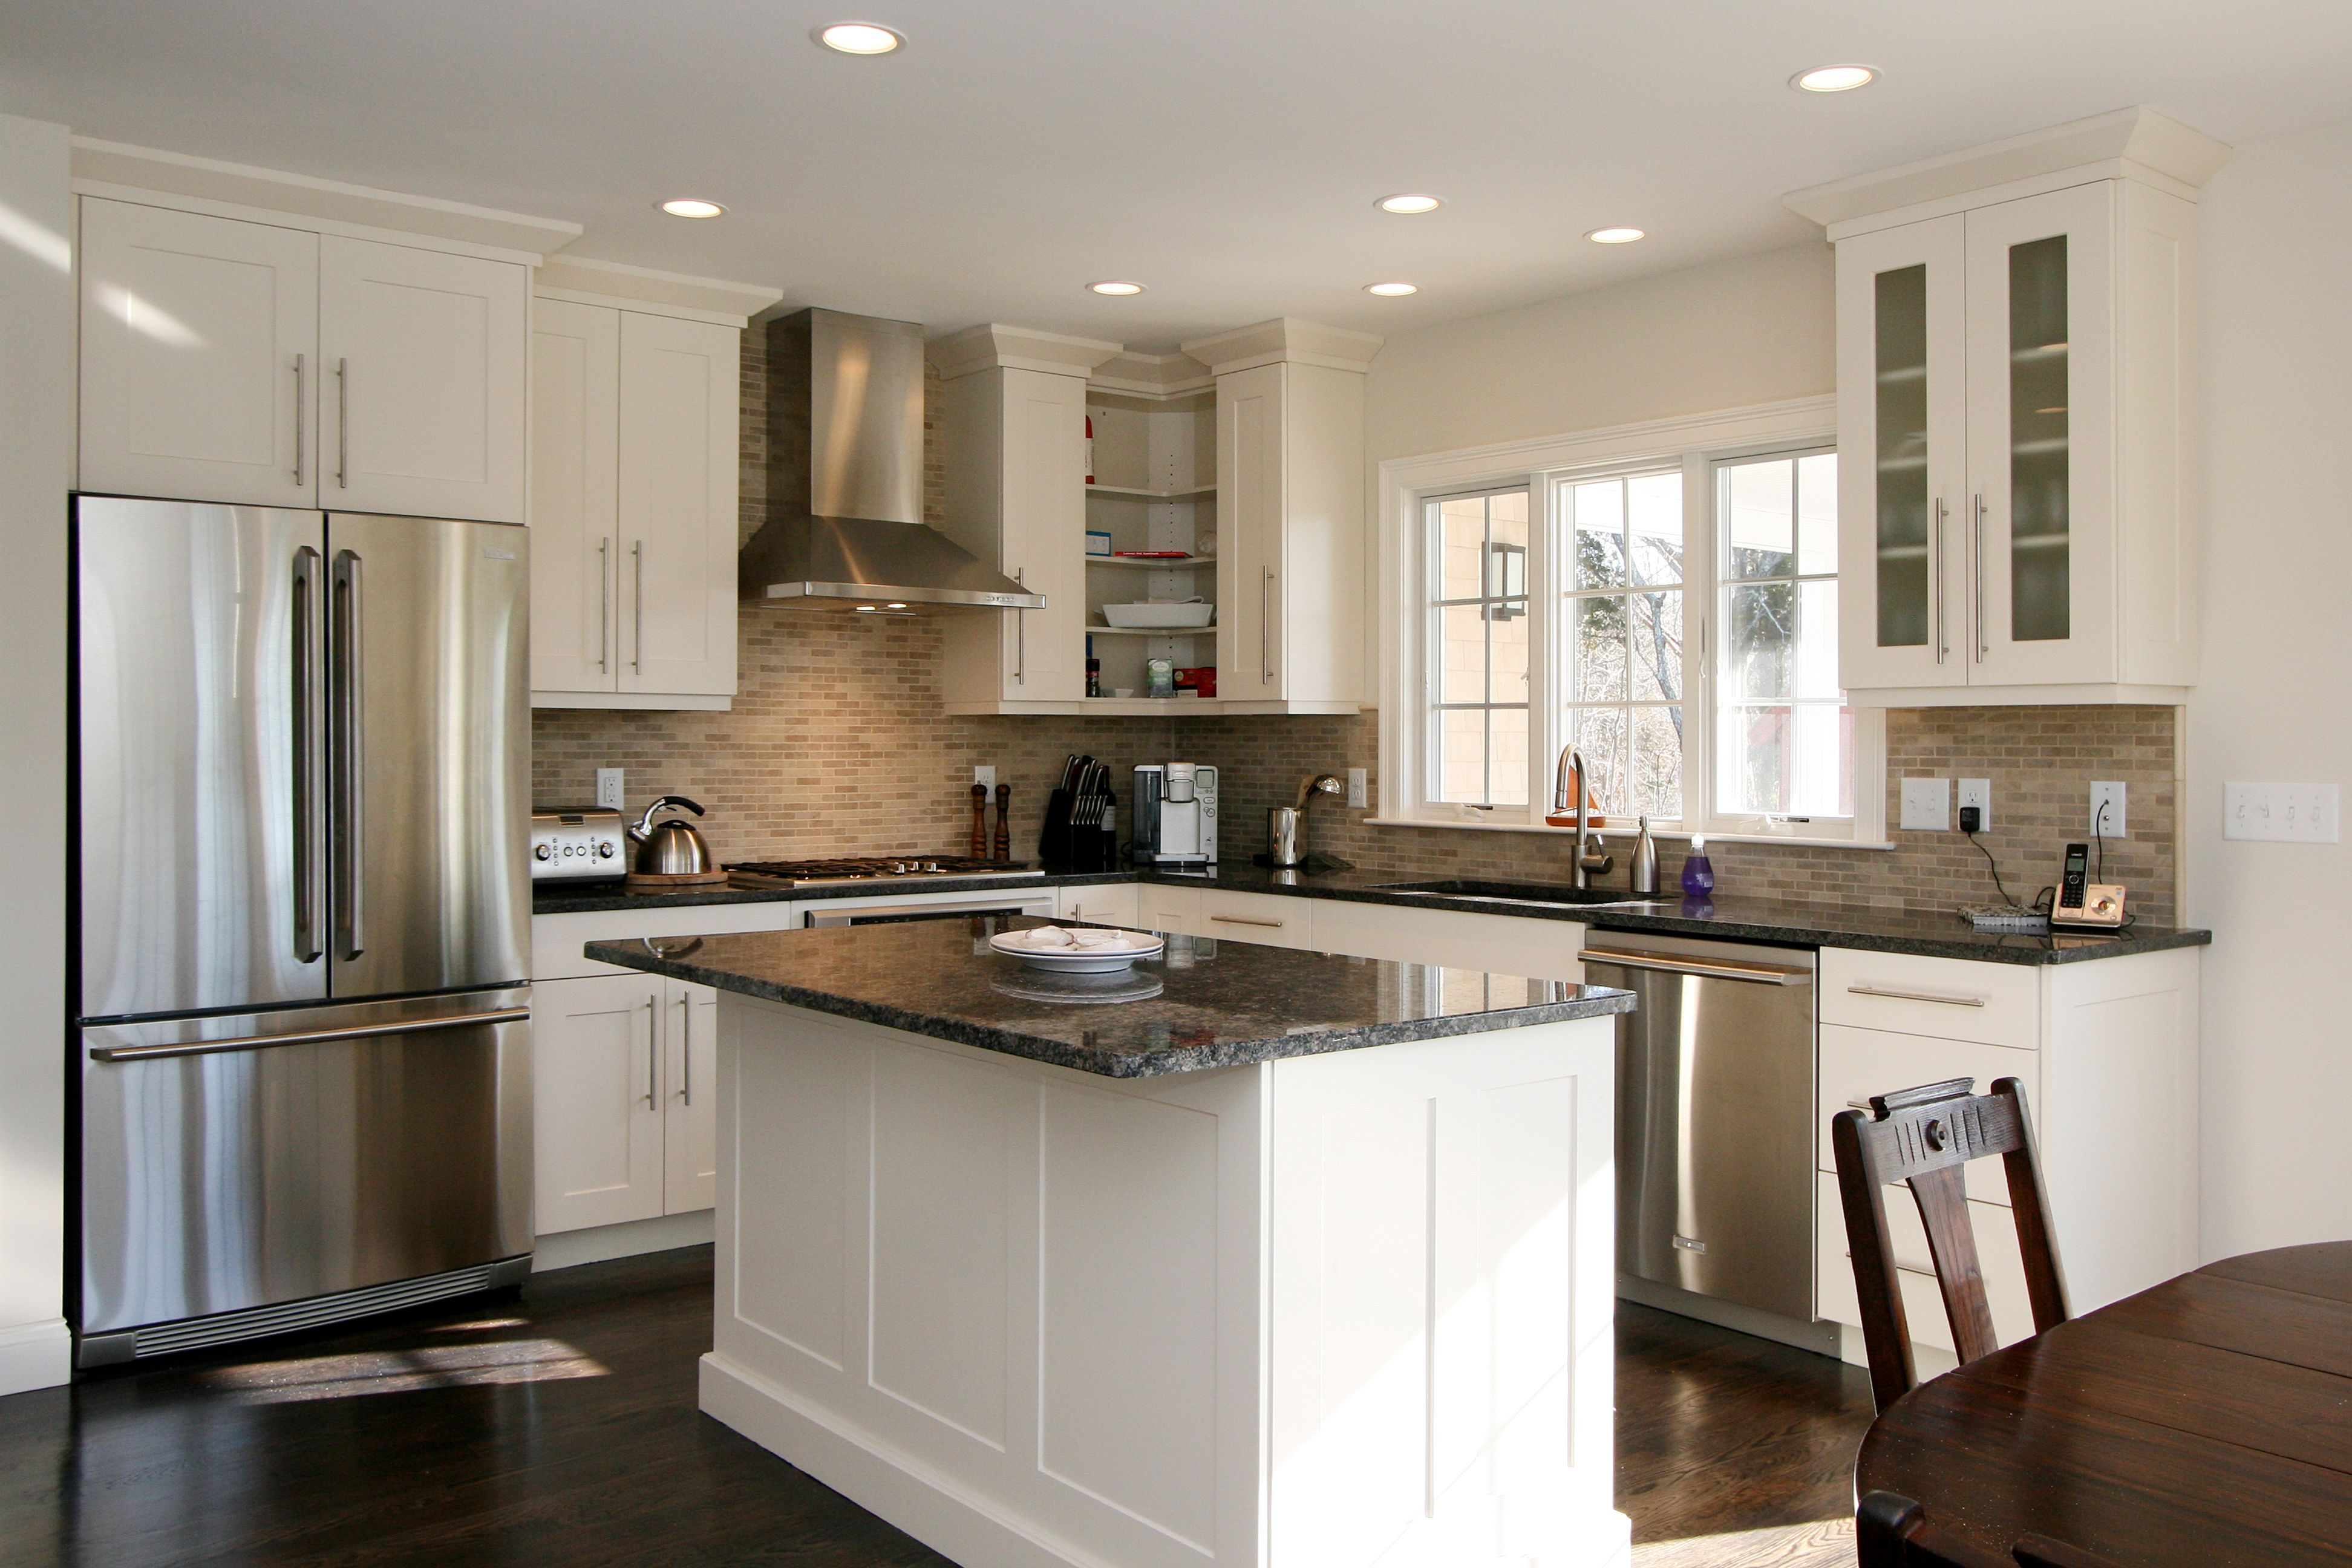 Small Kitchen Ideas Pictures Displaying Rectangle Black ...